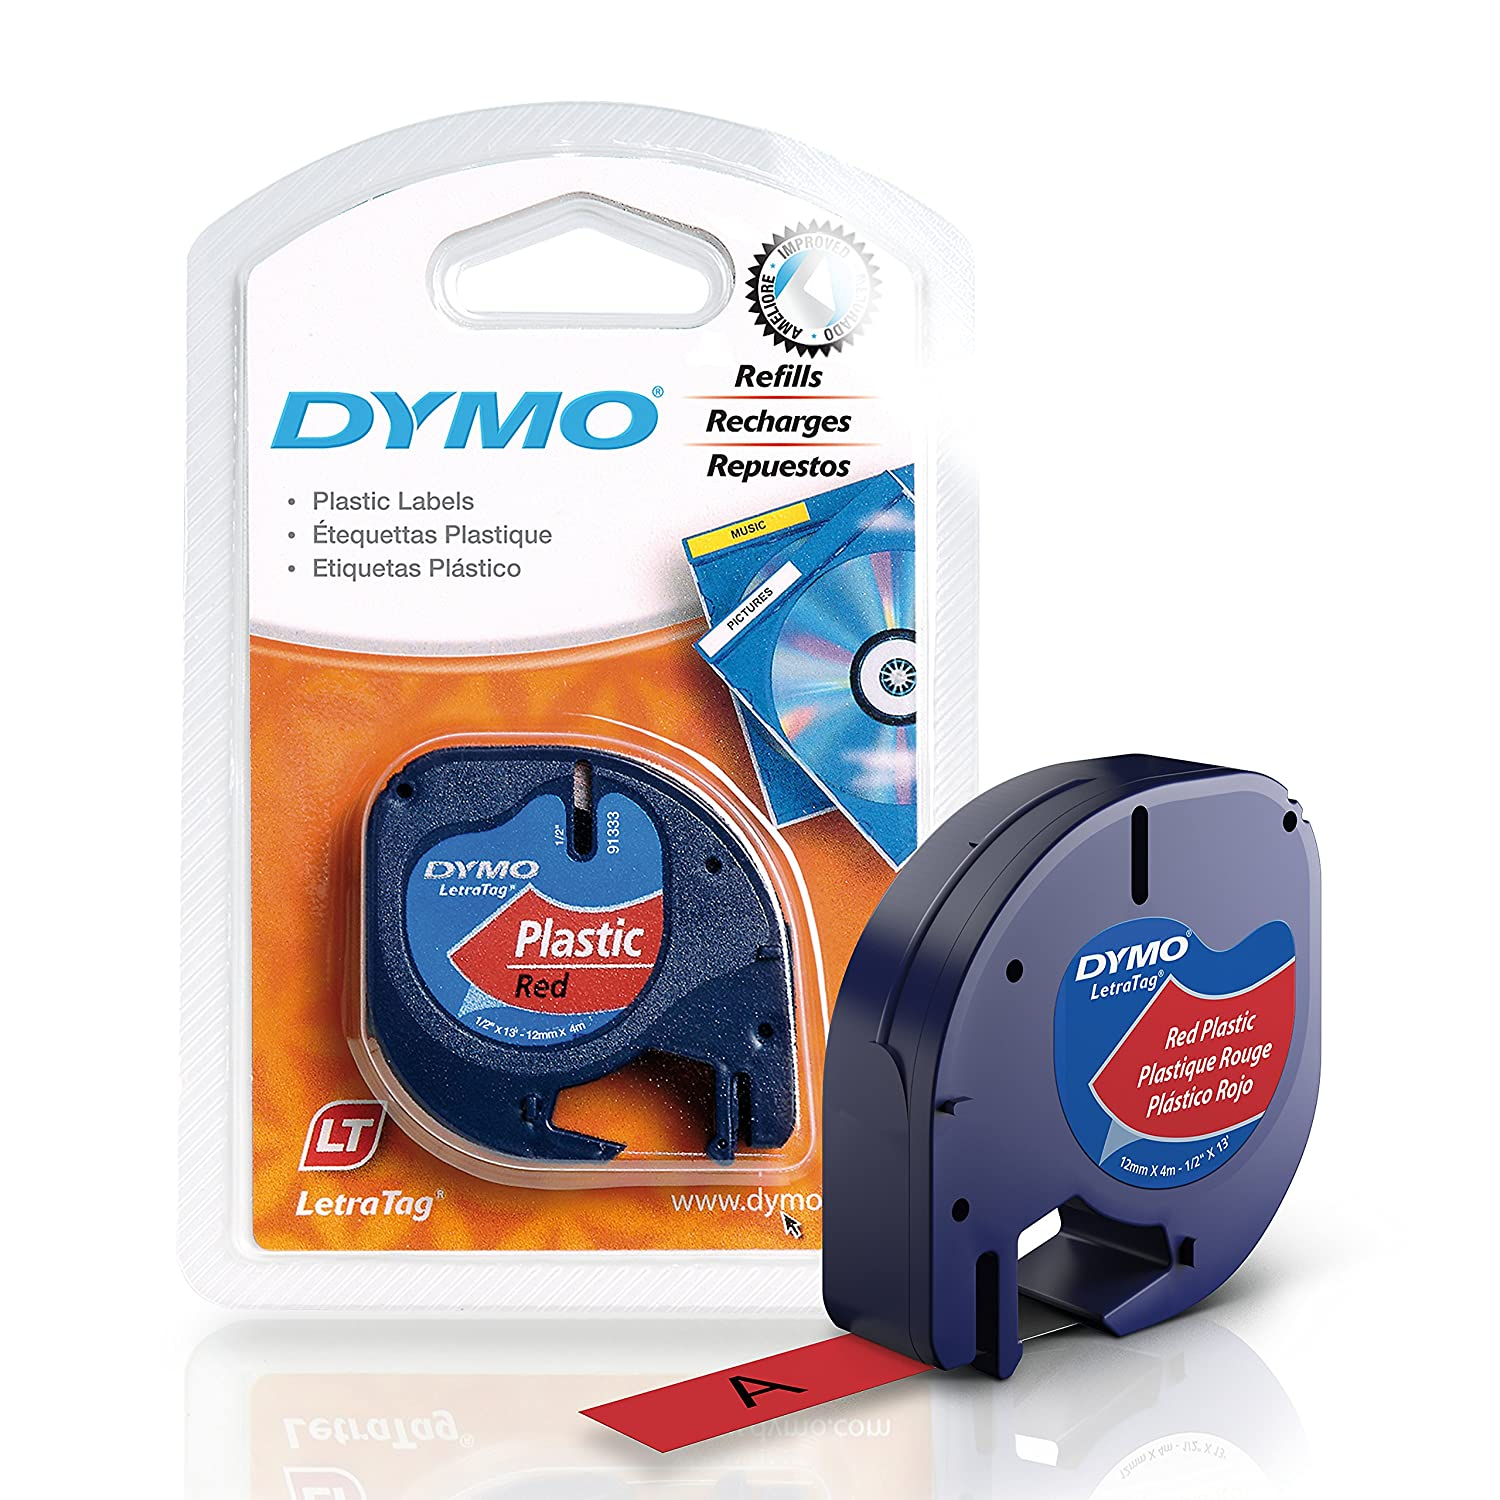 "DYMO LetraTag Labeller Tape, Plastic Tape Cassette 1/2"" x 13', 1-Carded, Pearl White (91331) Sanford Office Supplies"